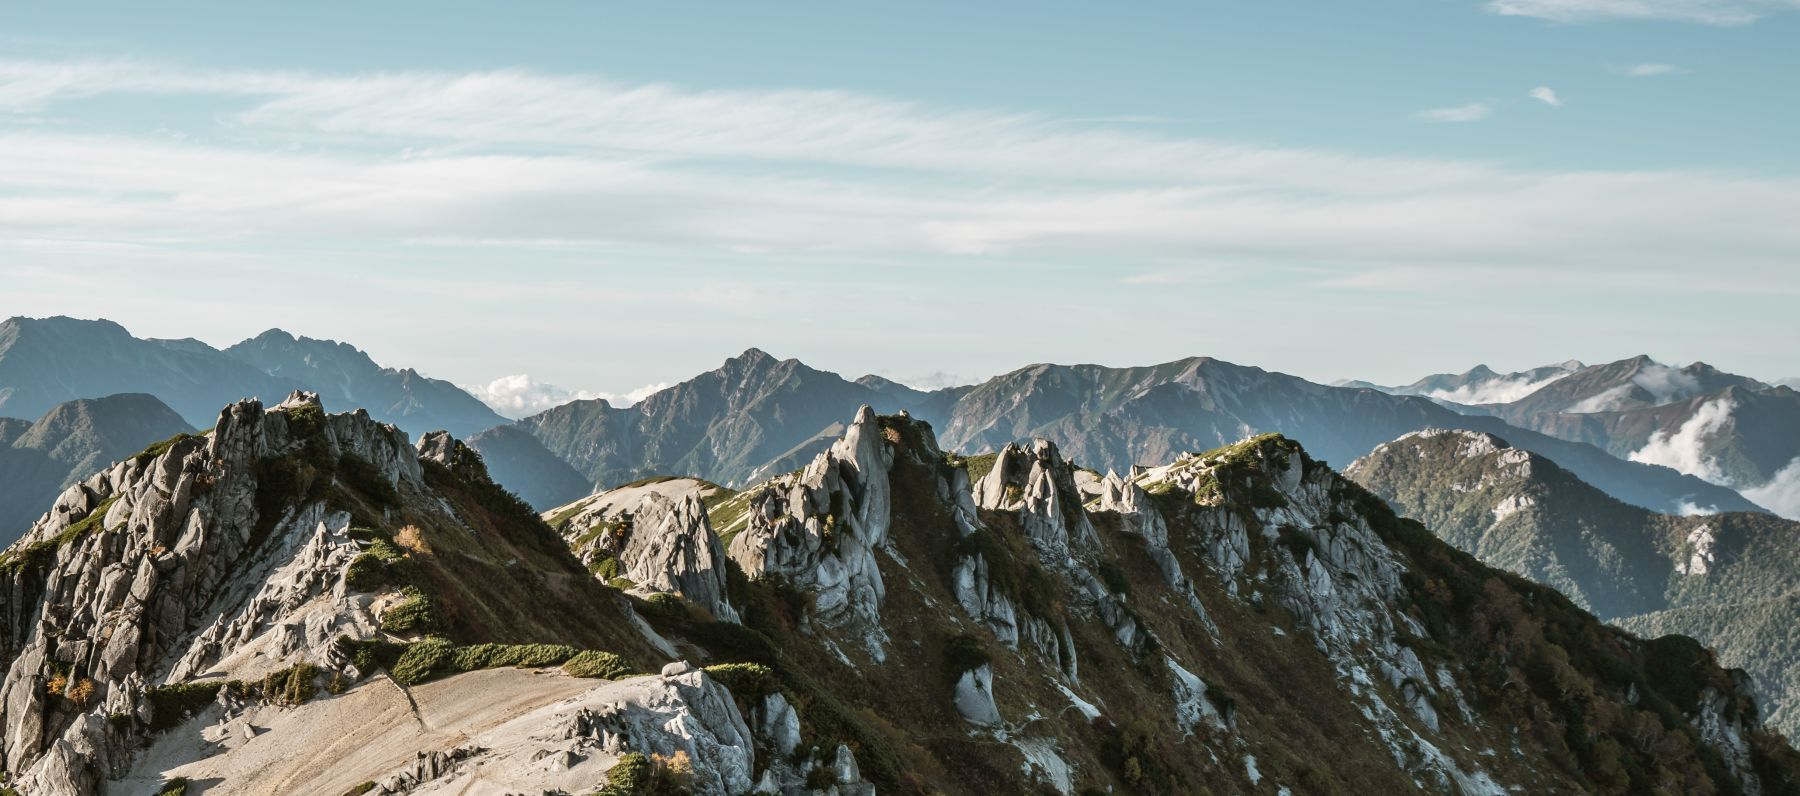 ThinkPlace is working on a new strategy paradigm for New Zealand's Ministry for the Environment